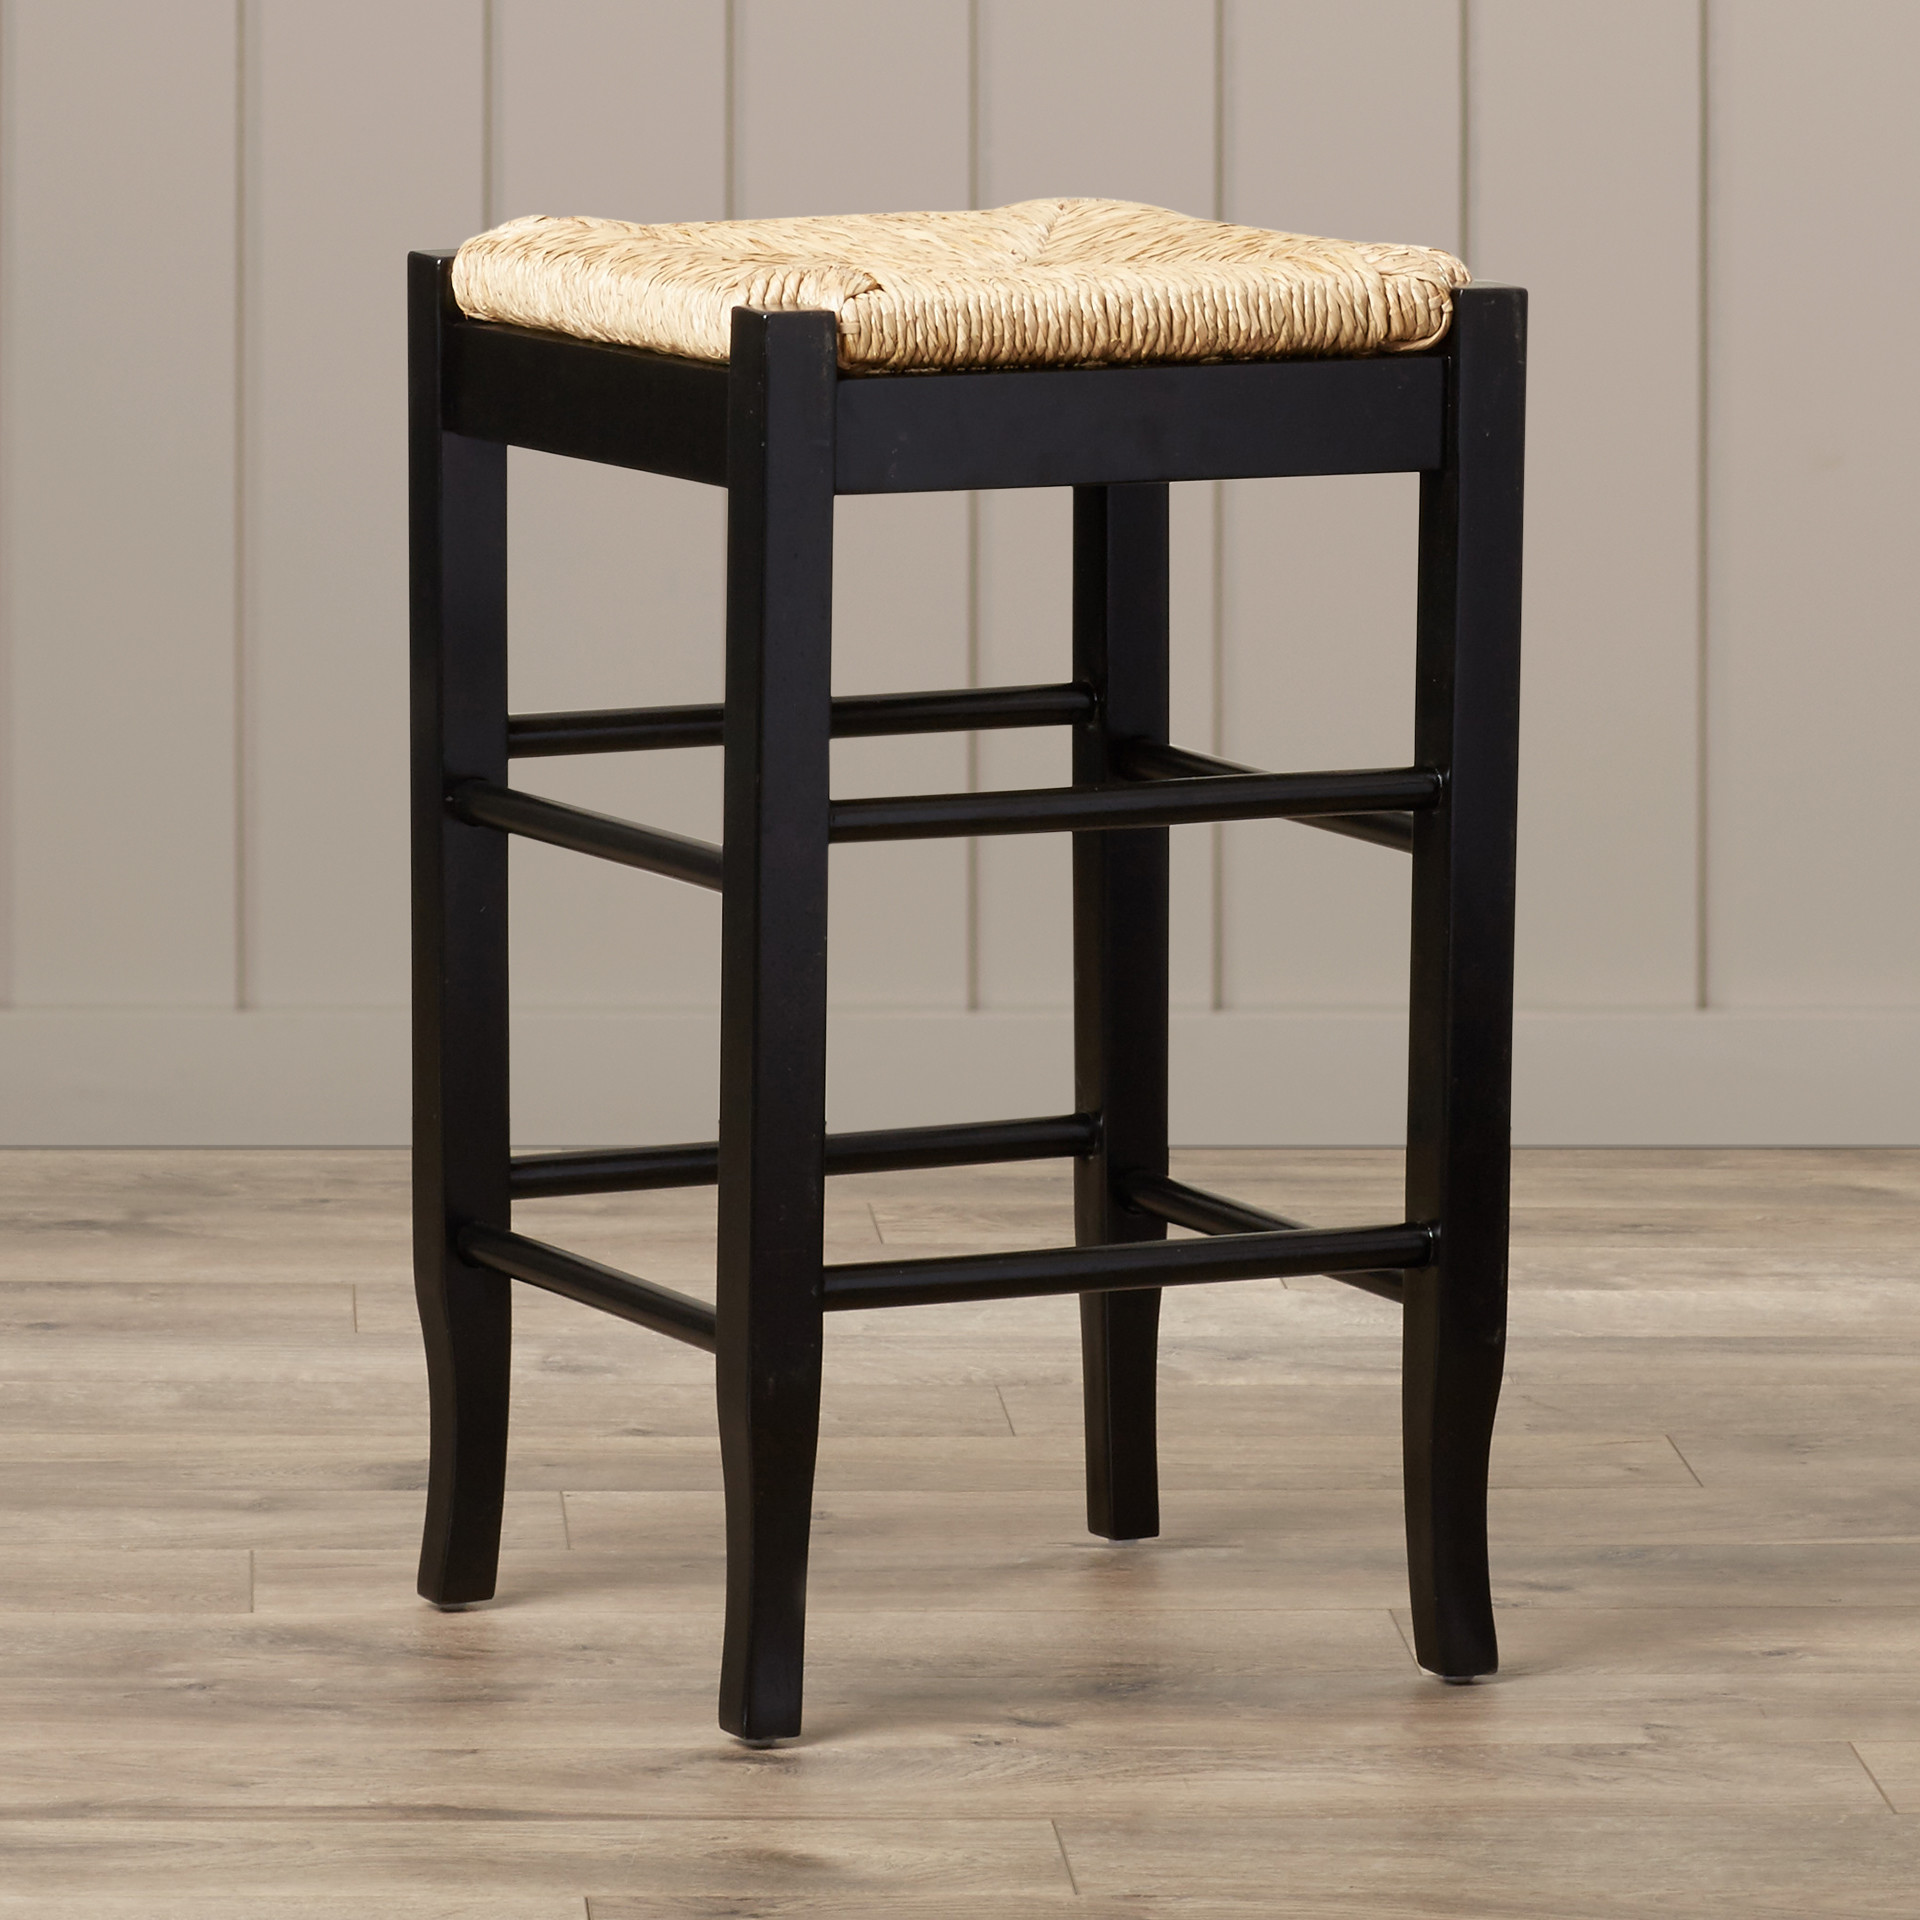 Furniture & Rug Seagrass Bar Stools